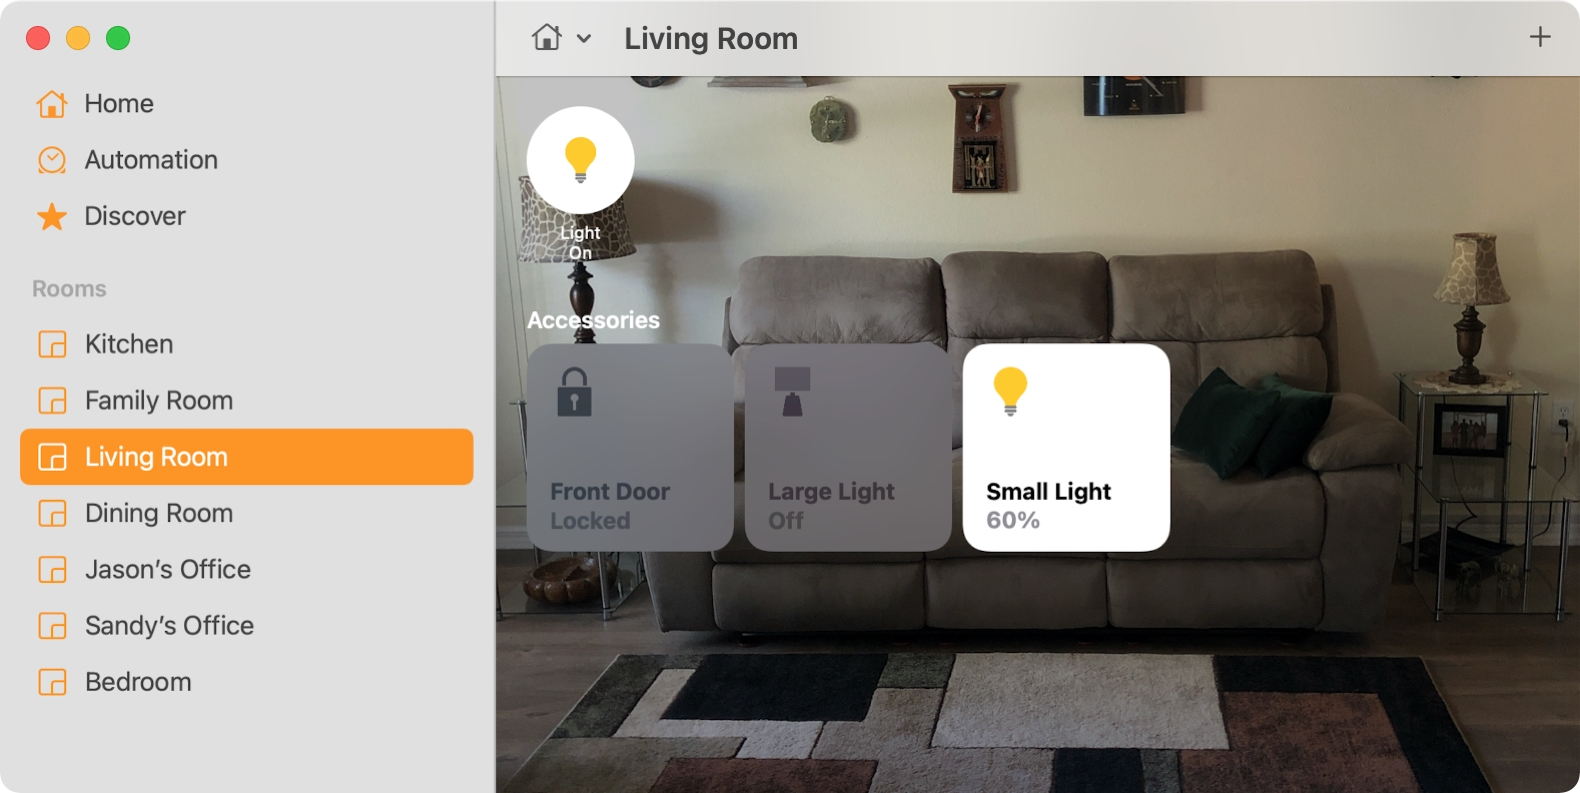 Rooms Section of the Home app on Mac